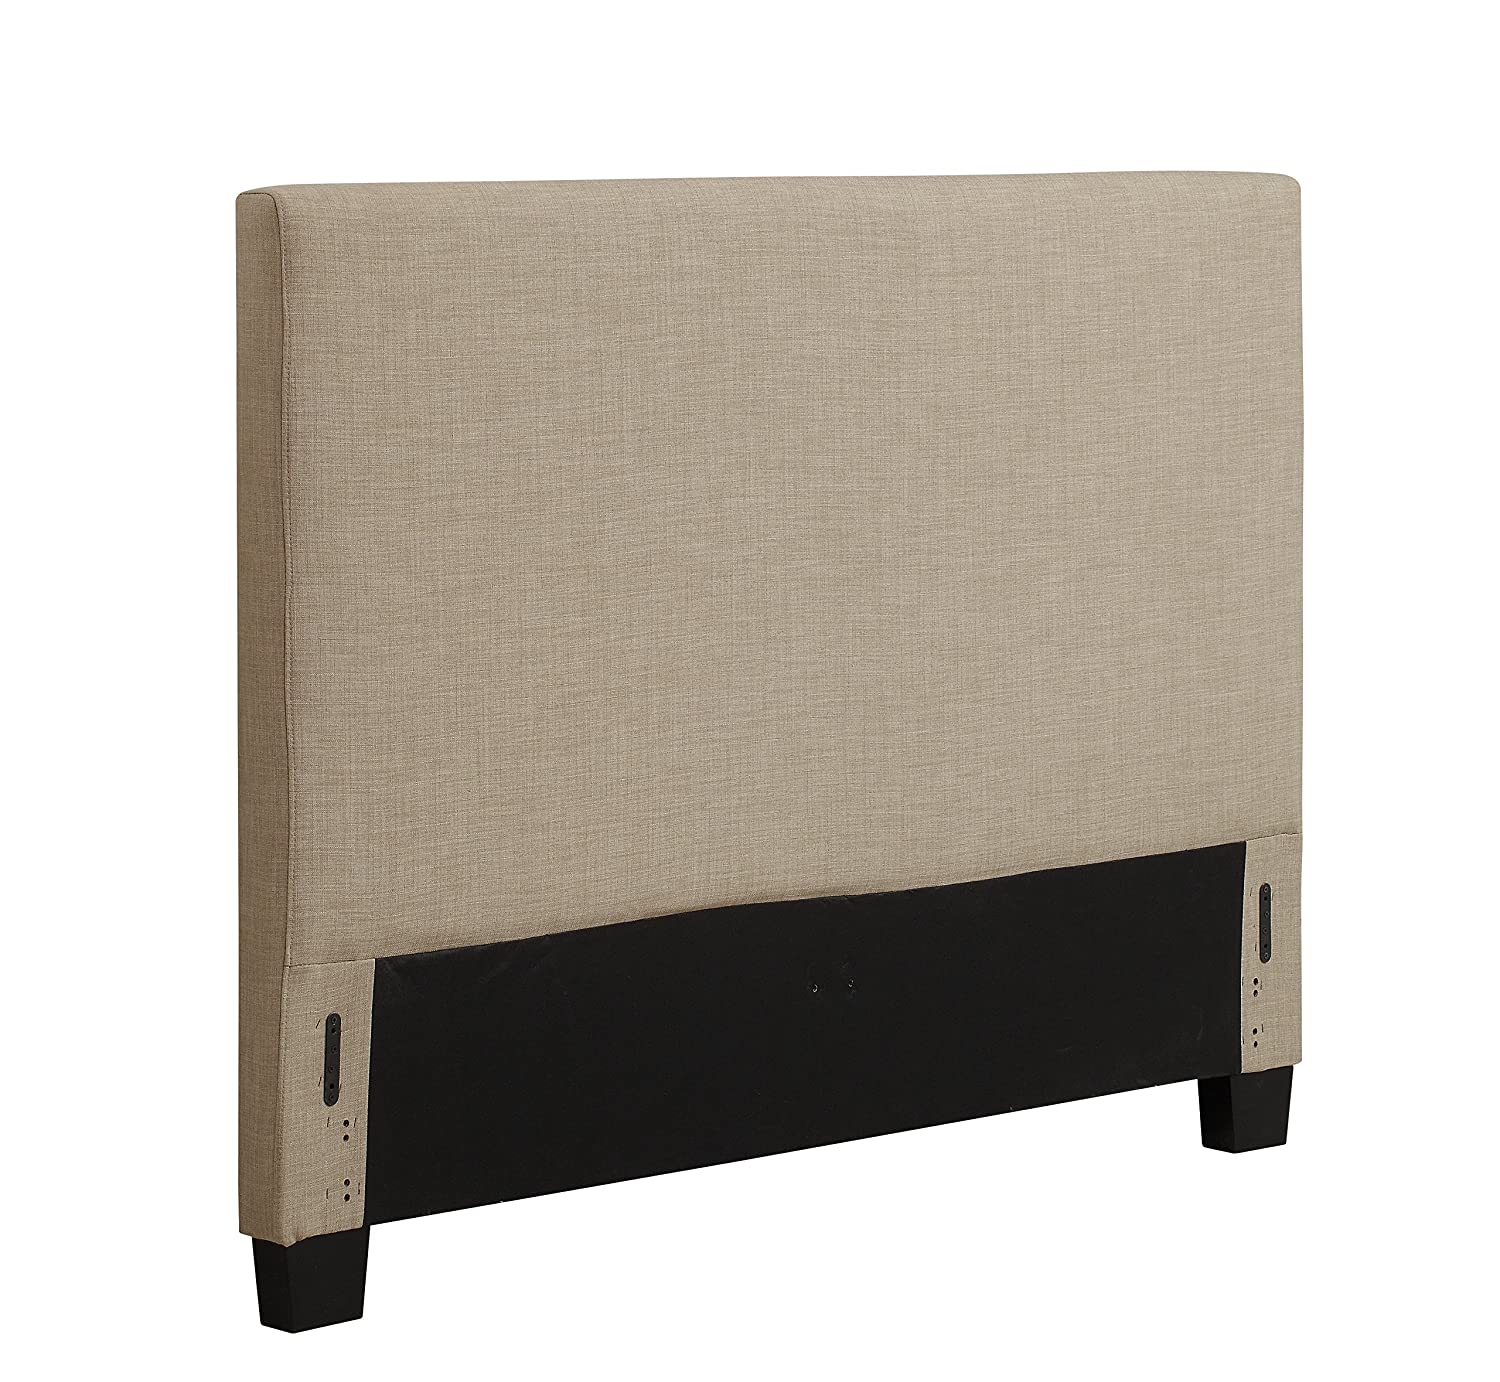 Amazon.com - Modus Furniture 3ZL7L5BH8 Saint Pierre Linen Headboard, Queen,  Espresso - - Amazon.com - Modus Furniture 3ZL7L5BH8 Saint Pierre Linen